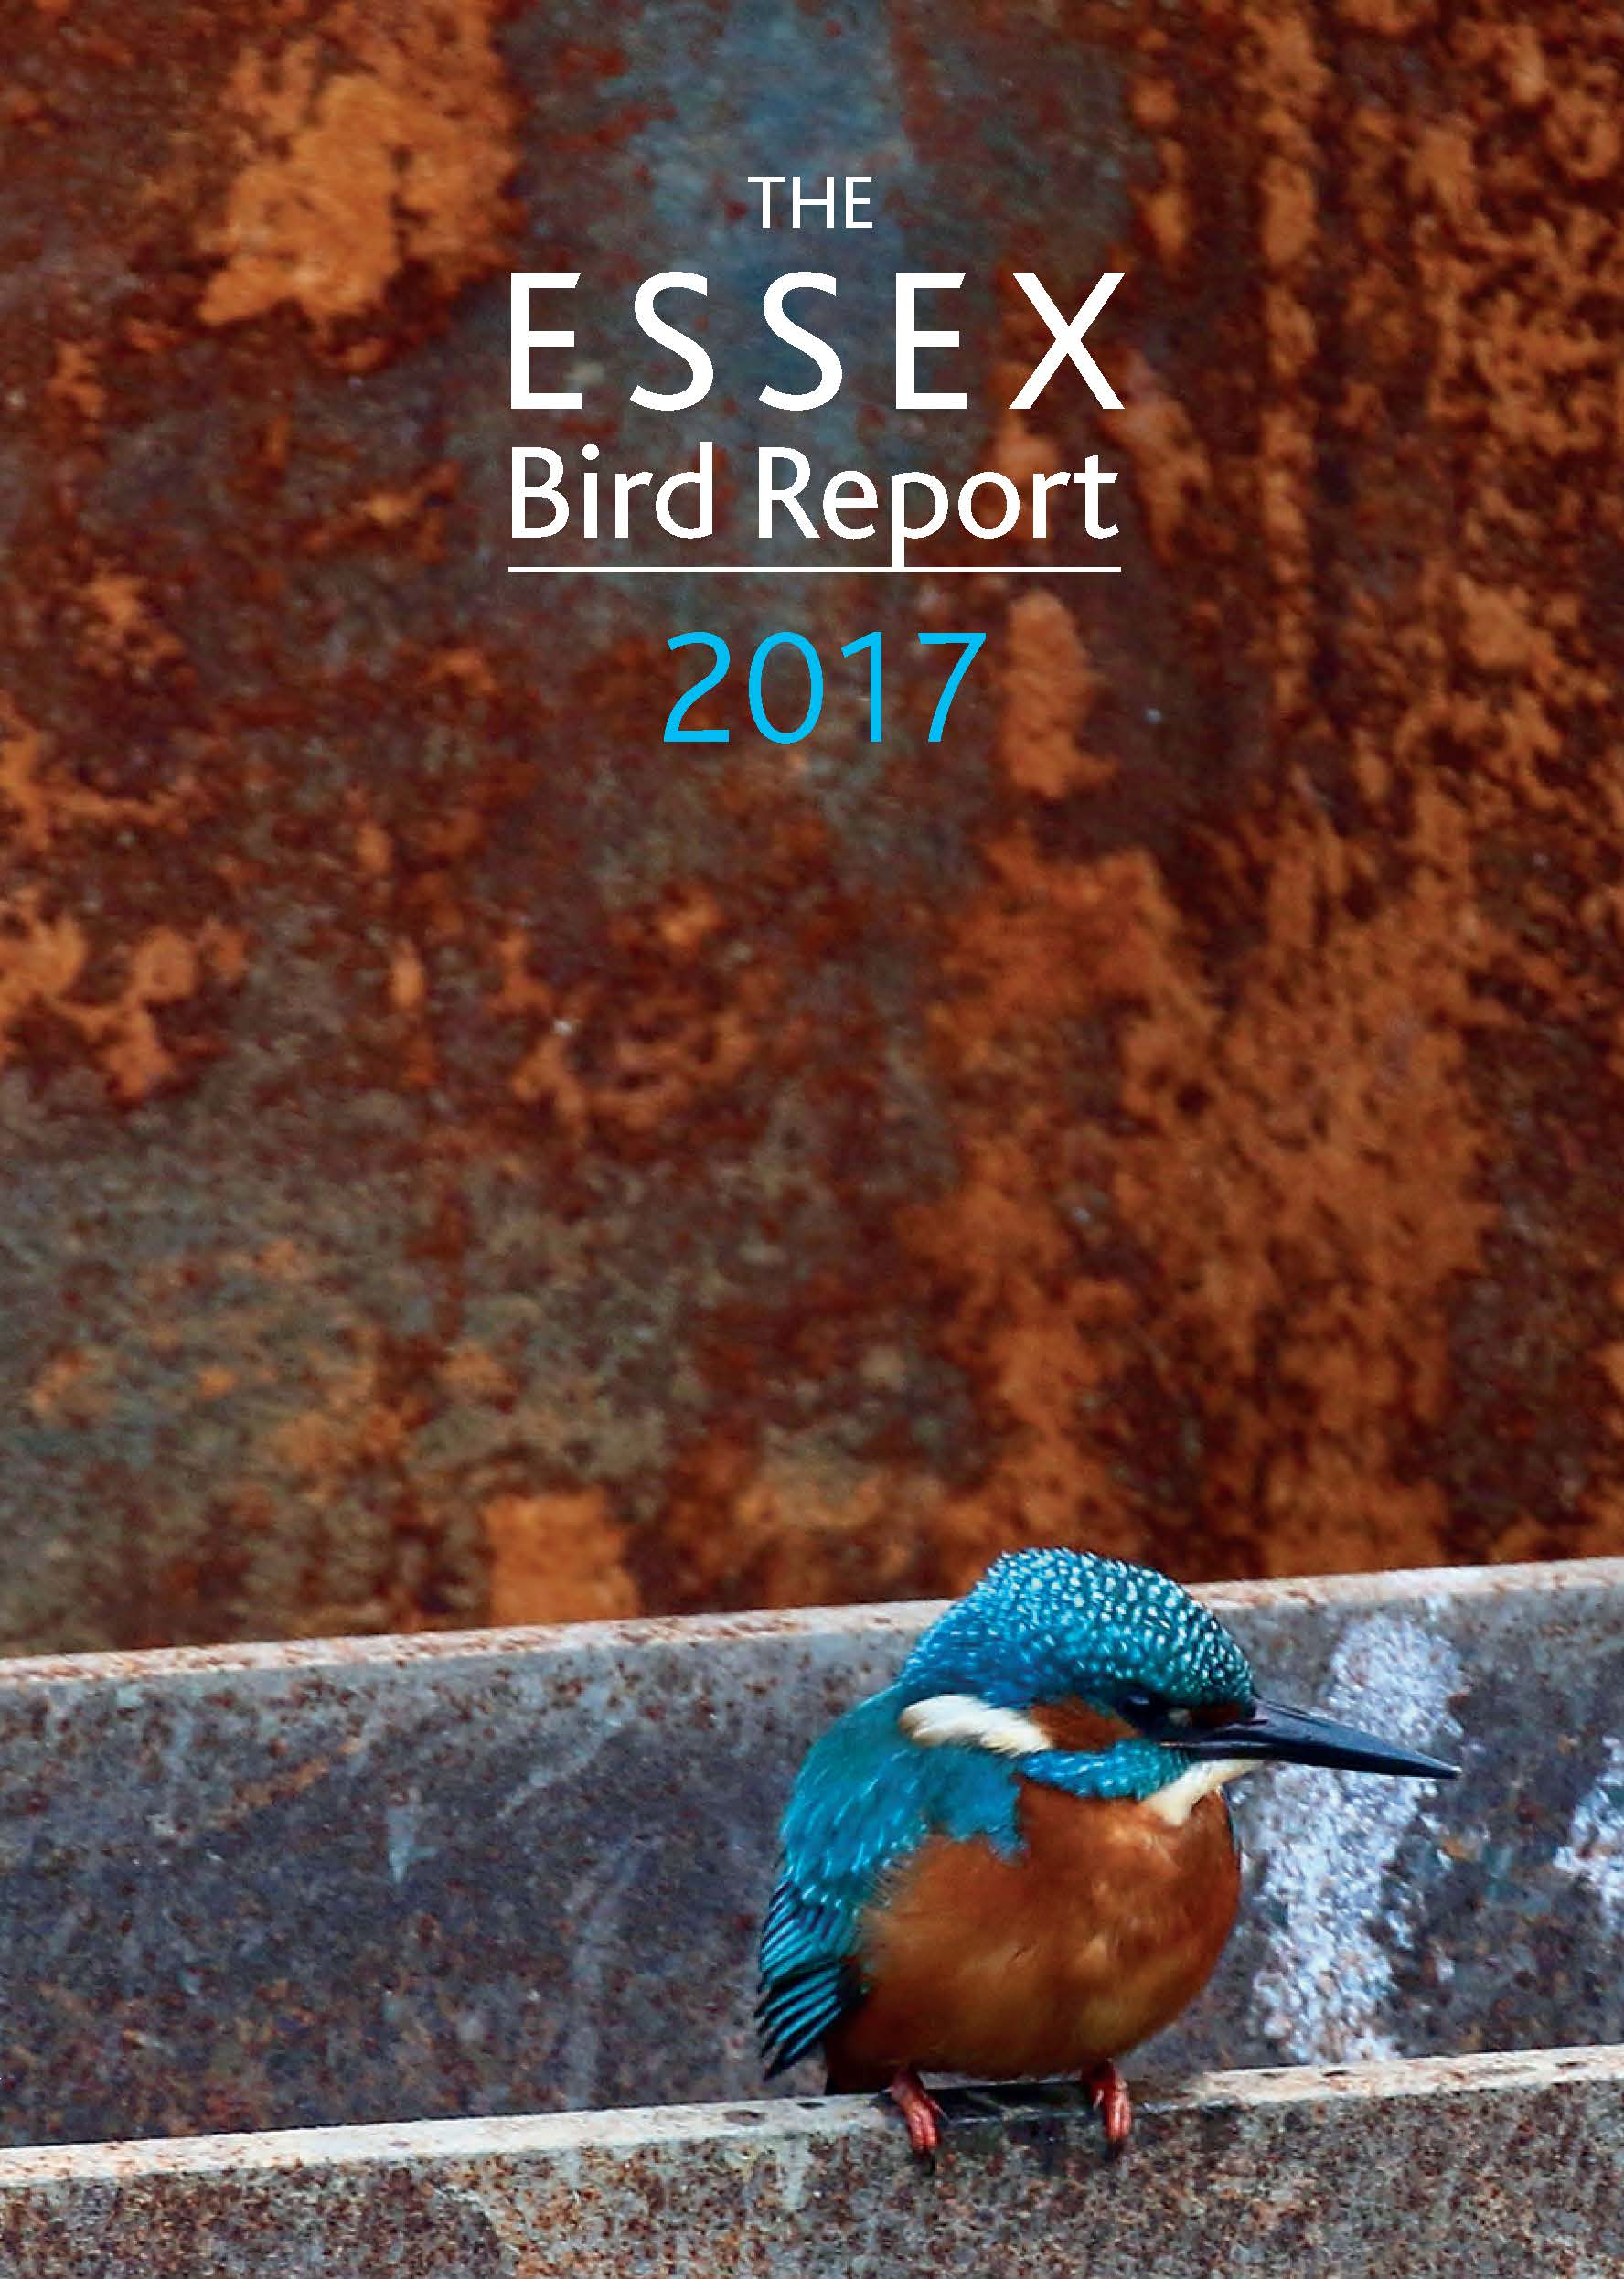 Essex Bird Report 2017